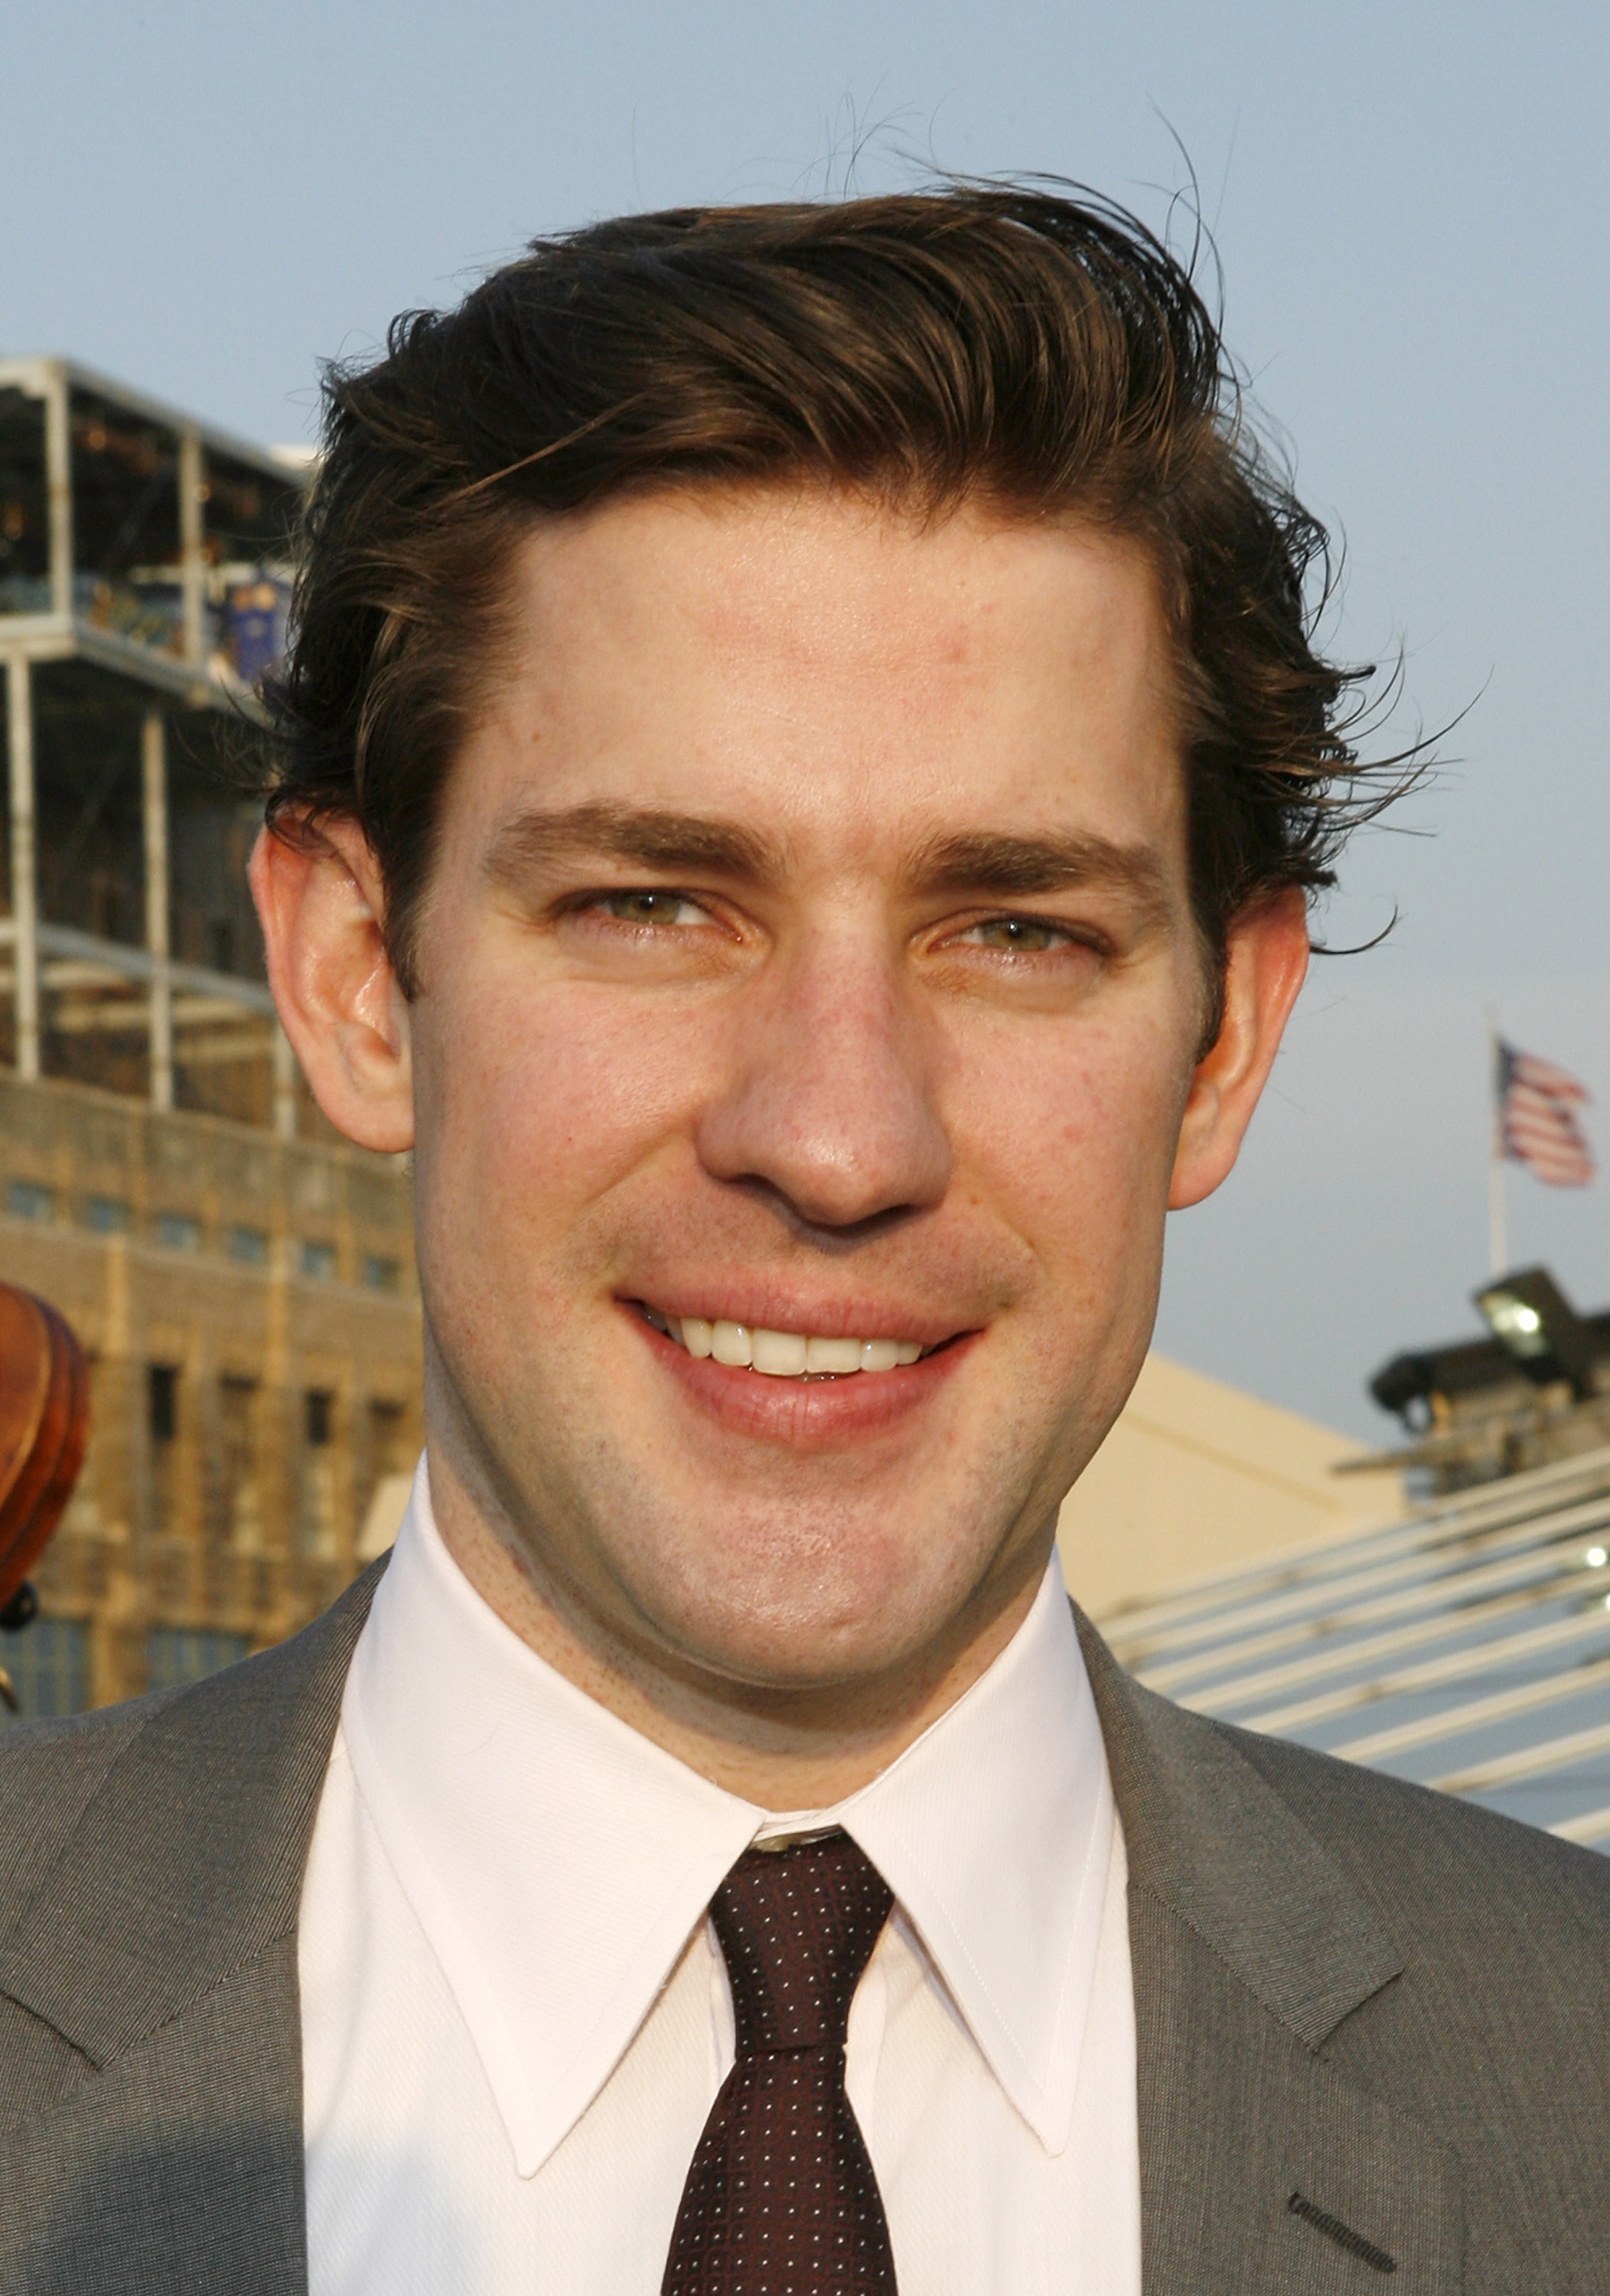 john krasinski 13 hoursjohn krasinski wife, john krasinski height, john krasinski and emily blunt, john krasinski and jenna fischer, john krasinski movies, john krasinski age, john krasinski new movie, john krasinski 13 hours, john krasinski daughter, john krasinski net worth, john krasinski 2015, john krasinski aloha, john krasinski esurance, john krasinski brothers, john krasinski beard, john krasinski interview, john krasinski baby, john krasinski emily blunt baby, john krasinski wedding